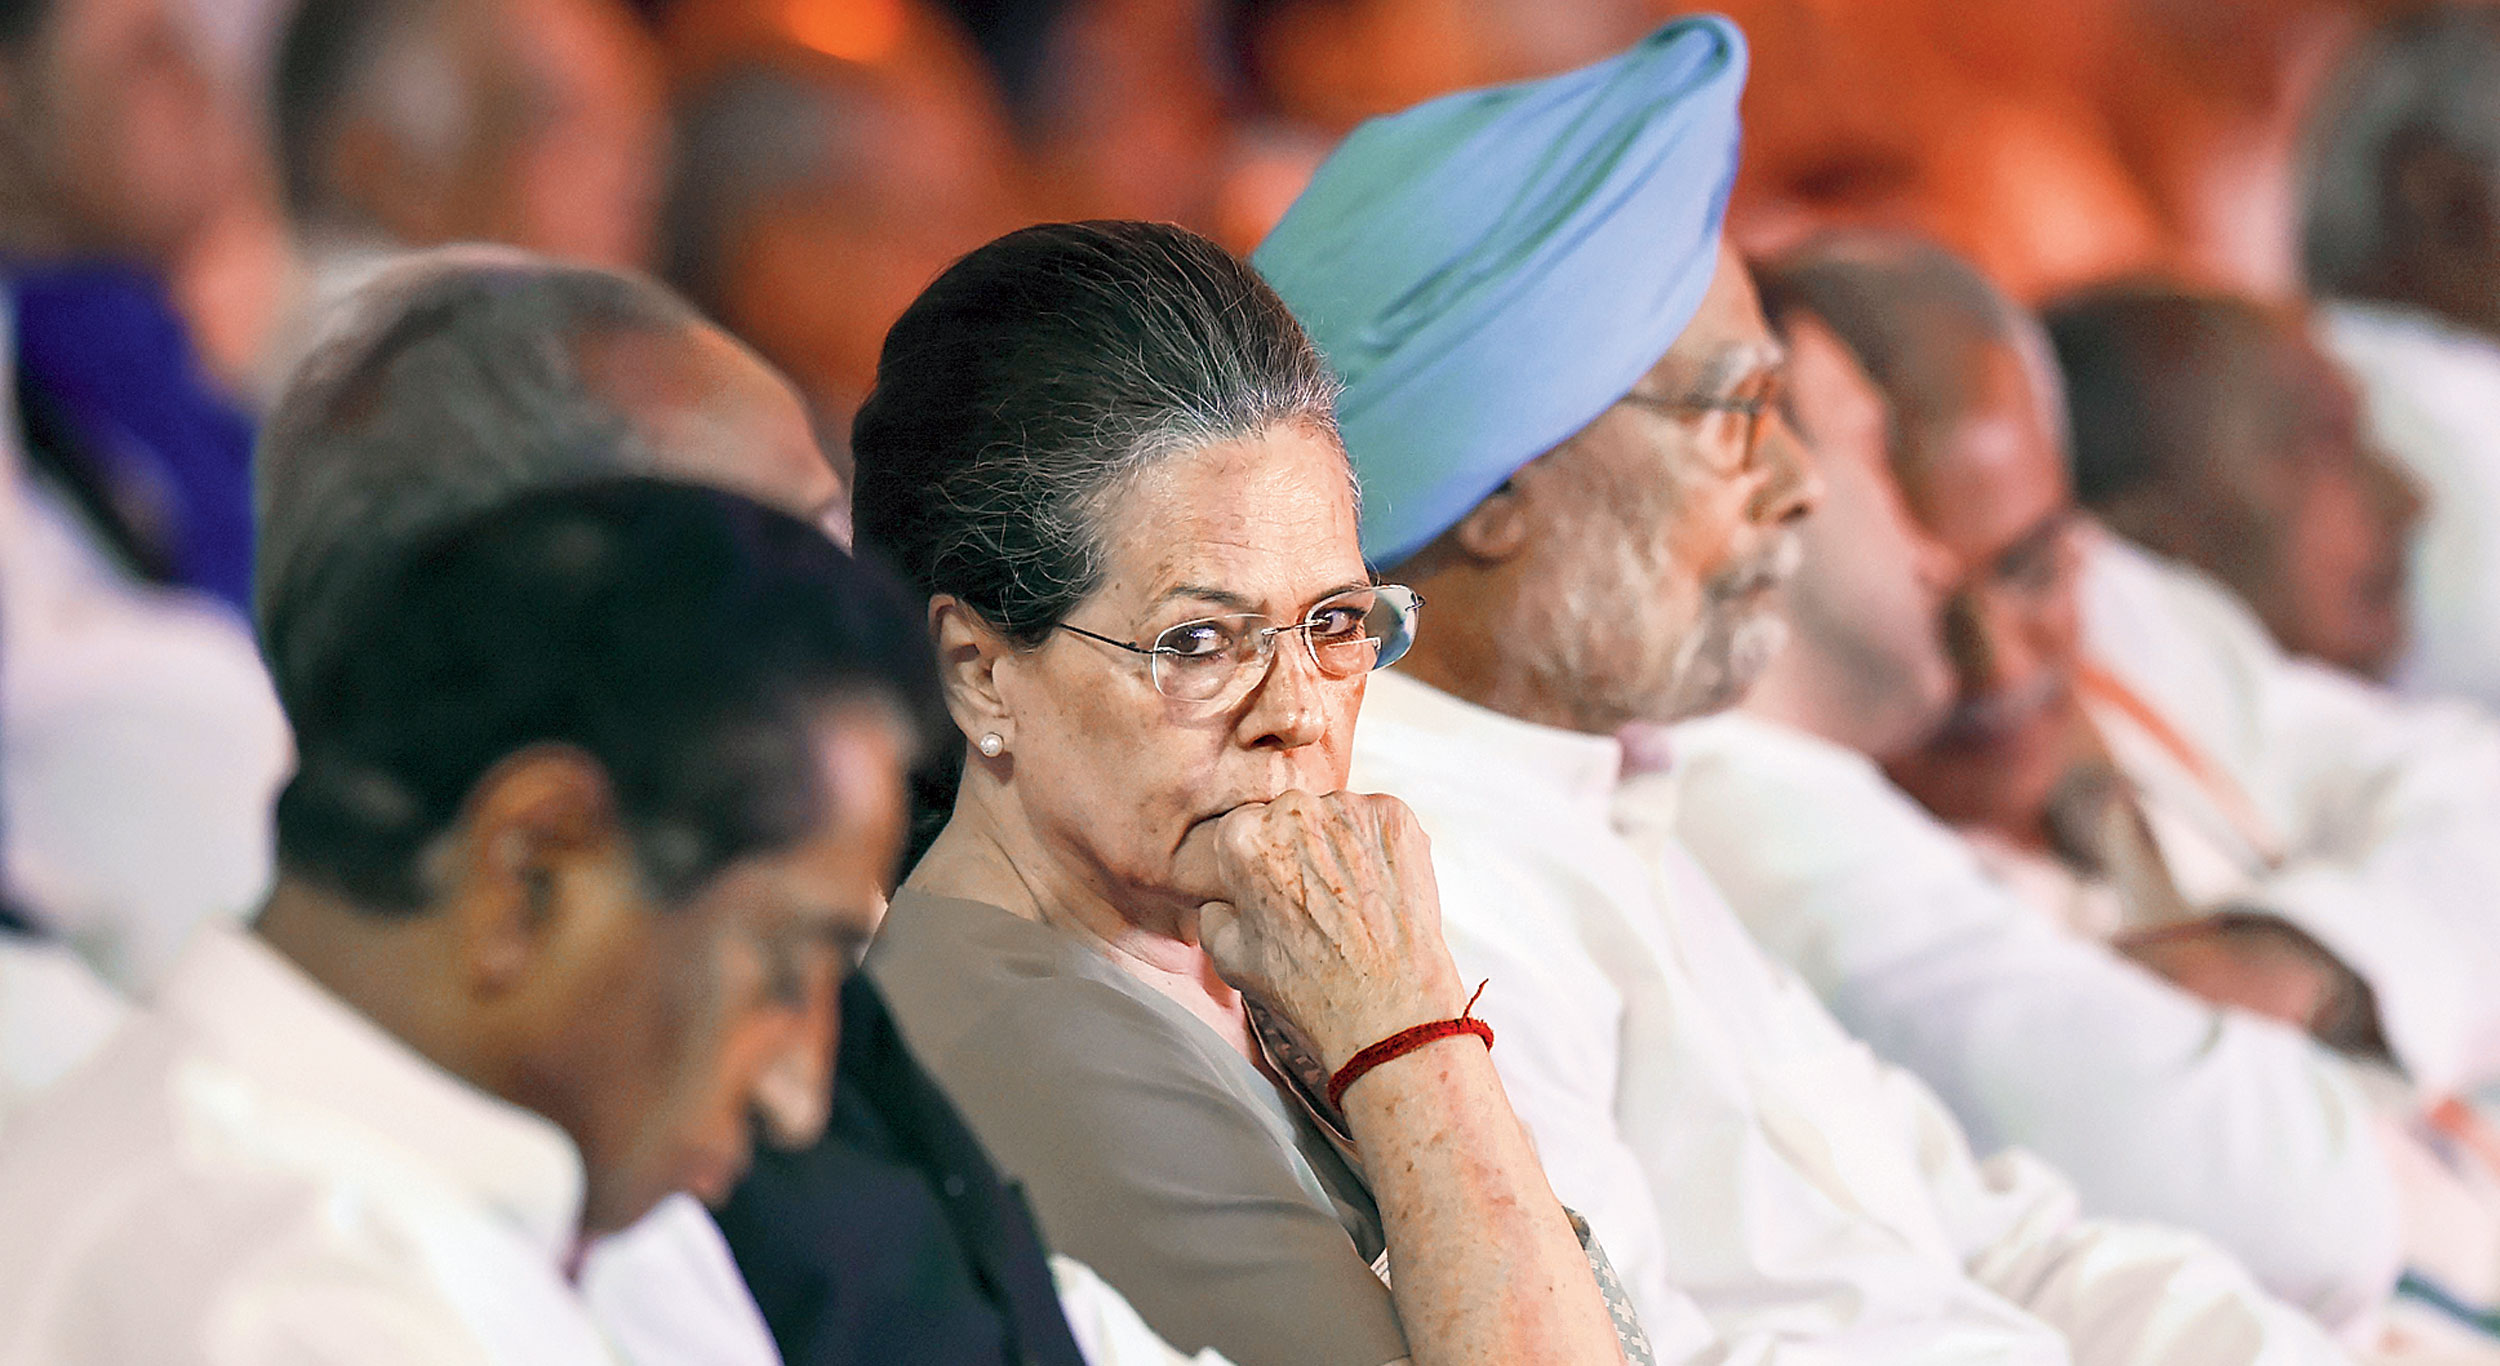 The Congress president, seated in the front row, appeared agitated and then stood up in protest before walking towards the exit. The other Congress MPs followed her, shouting slogans.